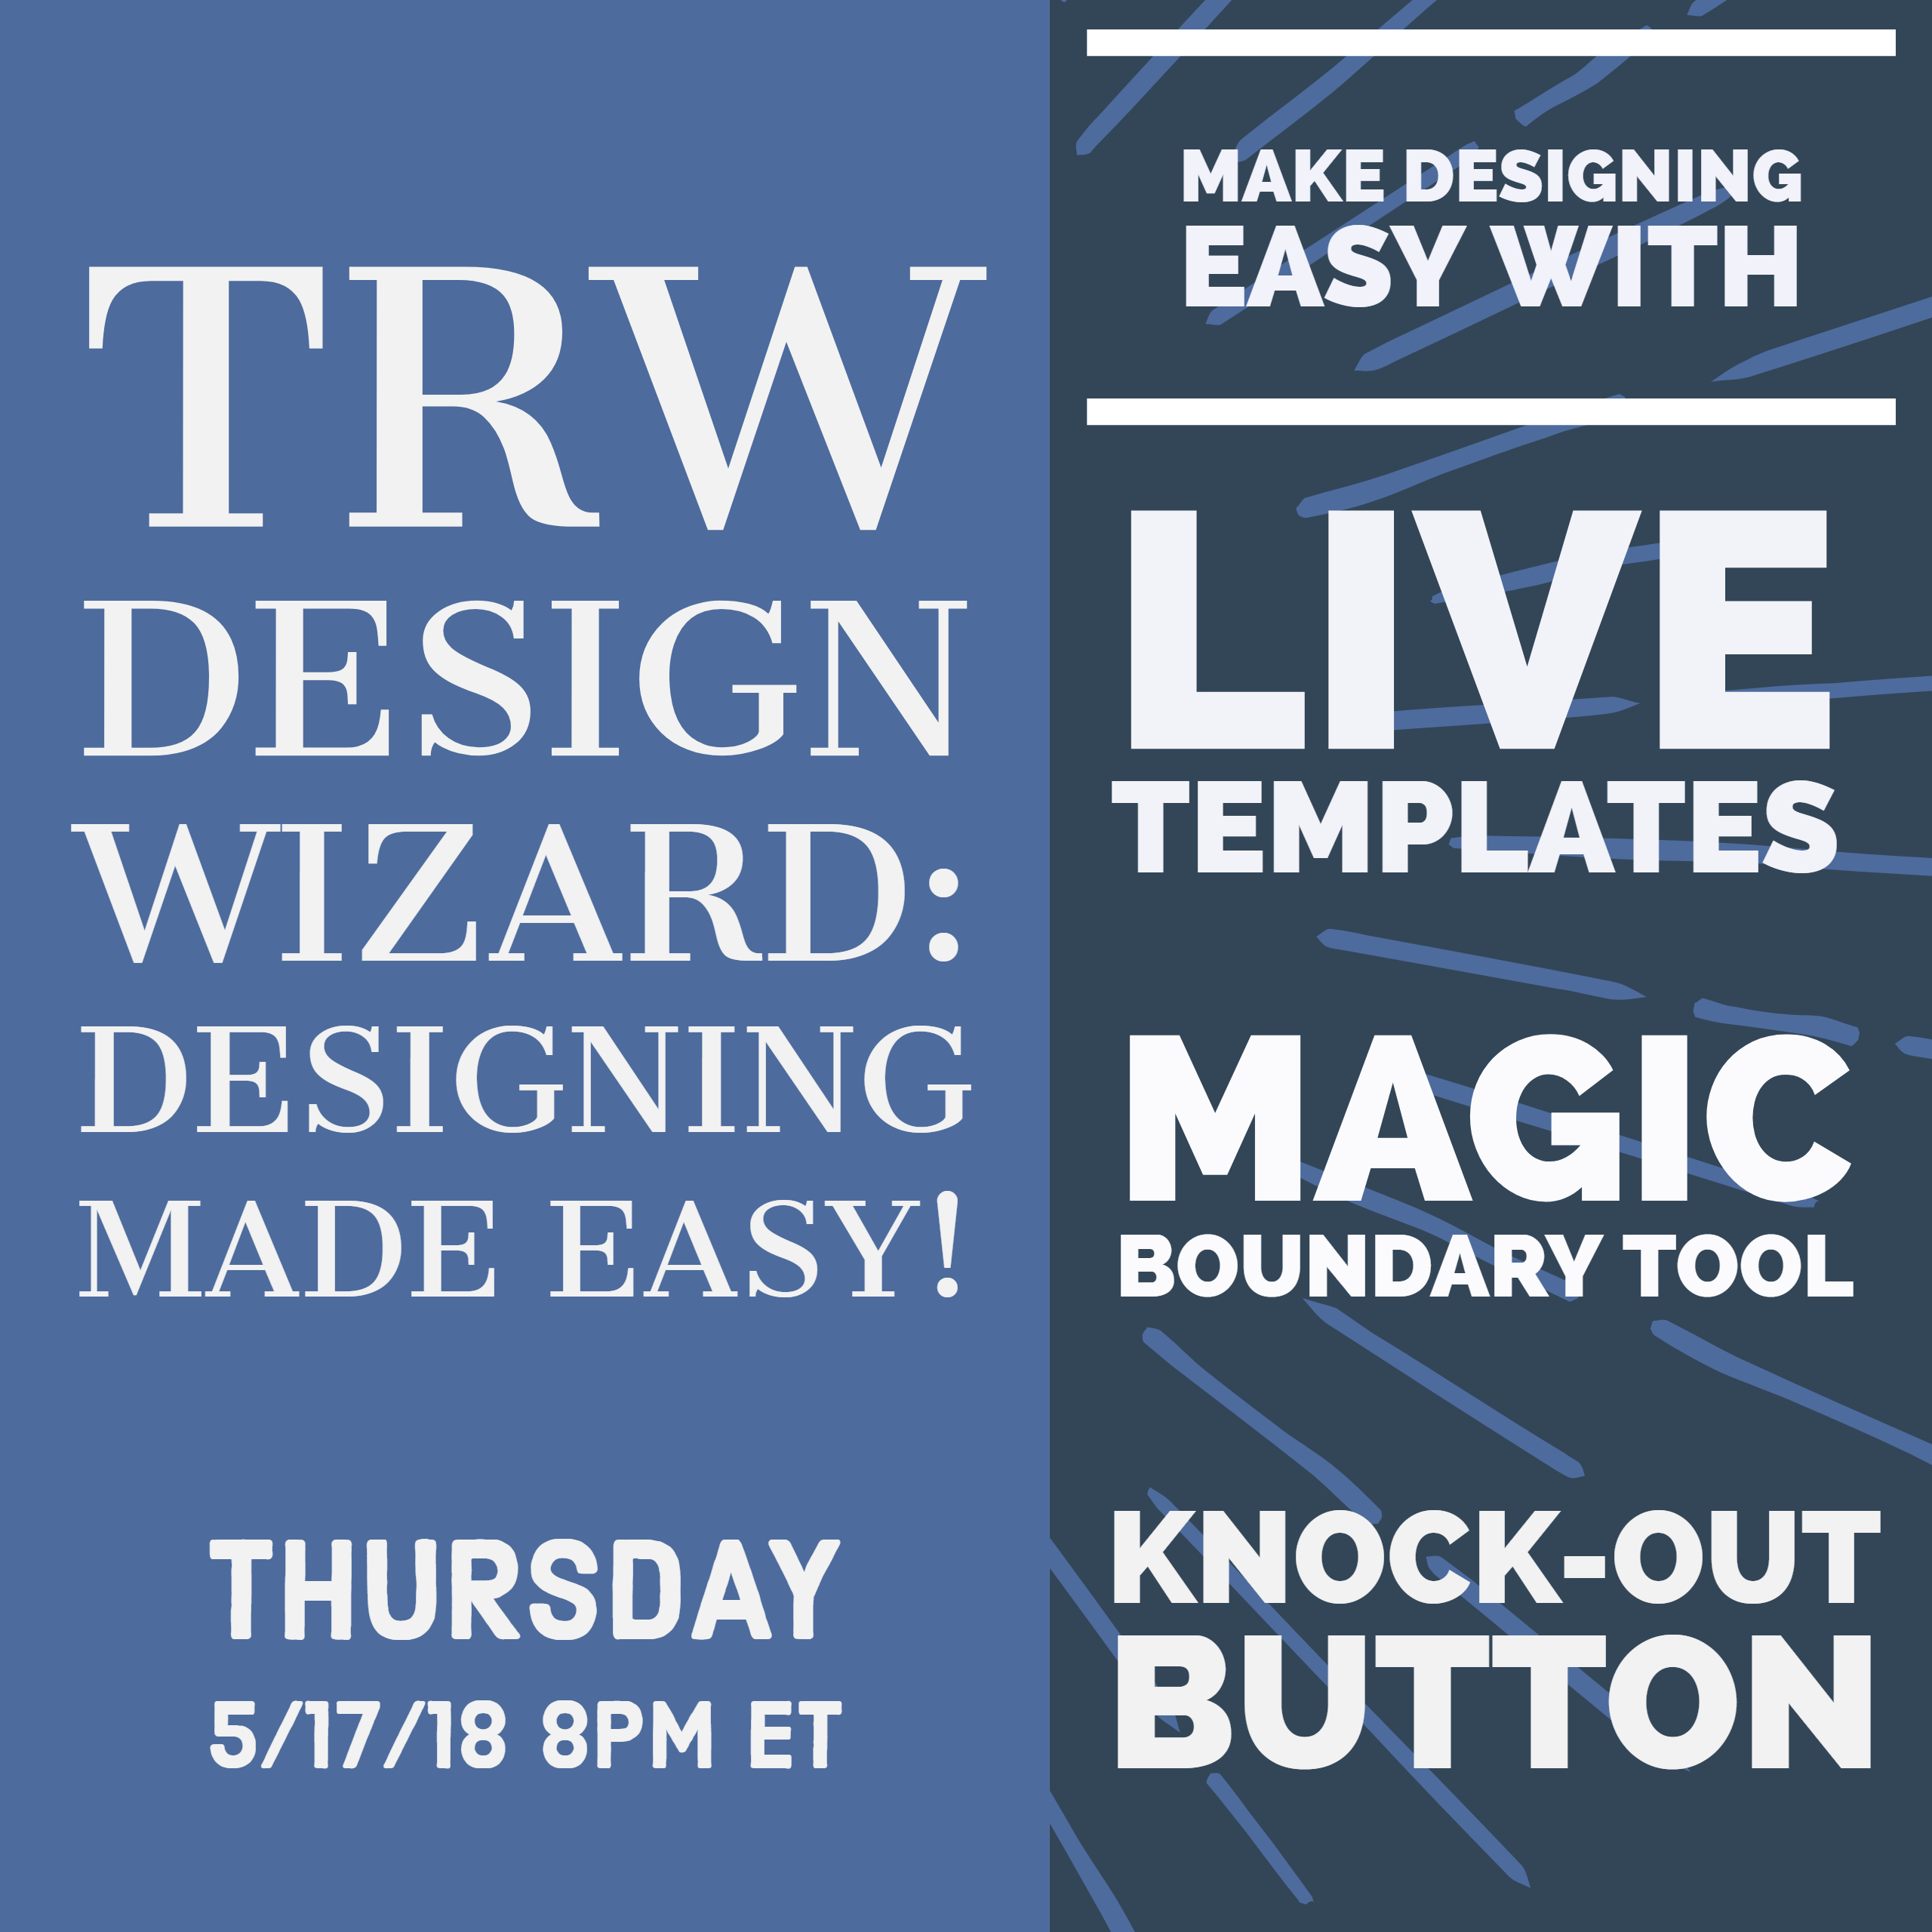 5/17/18 Designing Made Easy